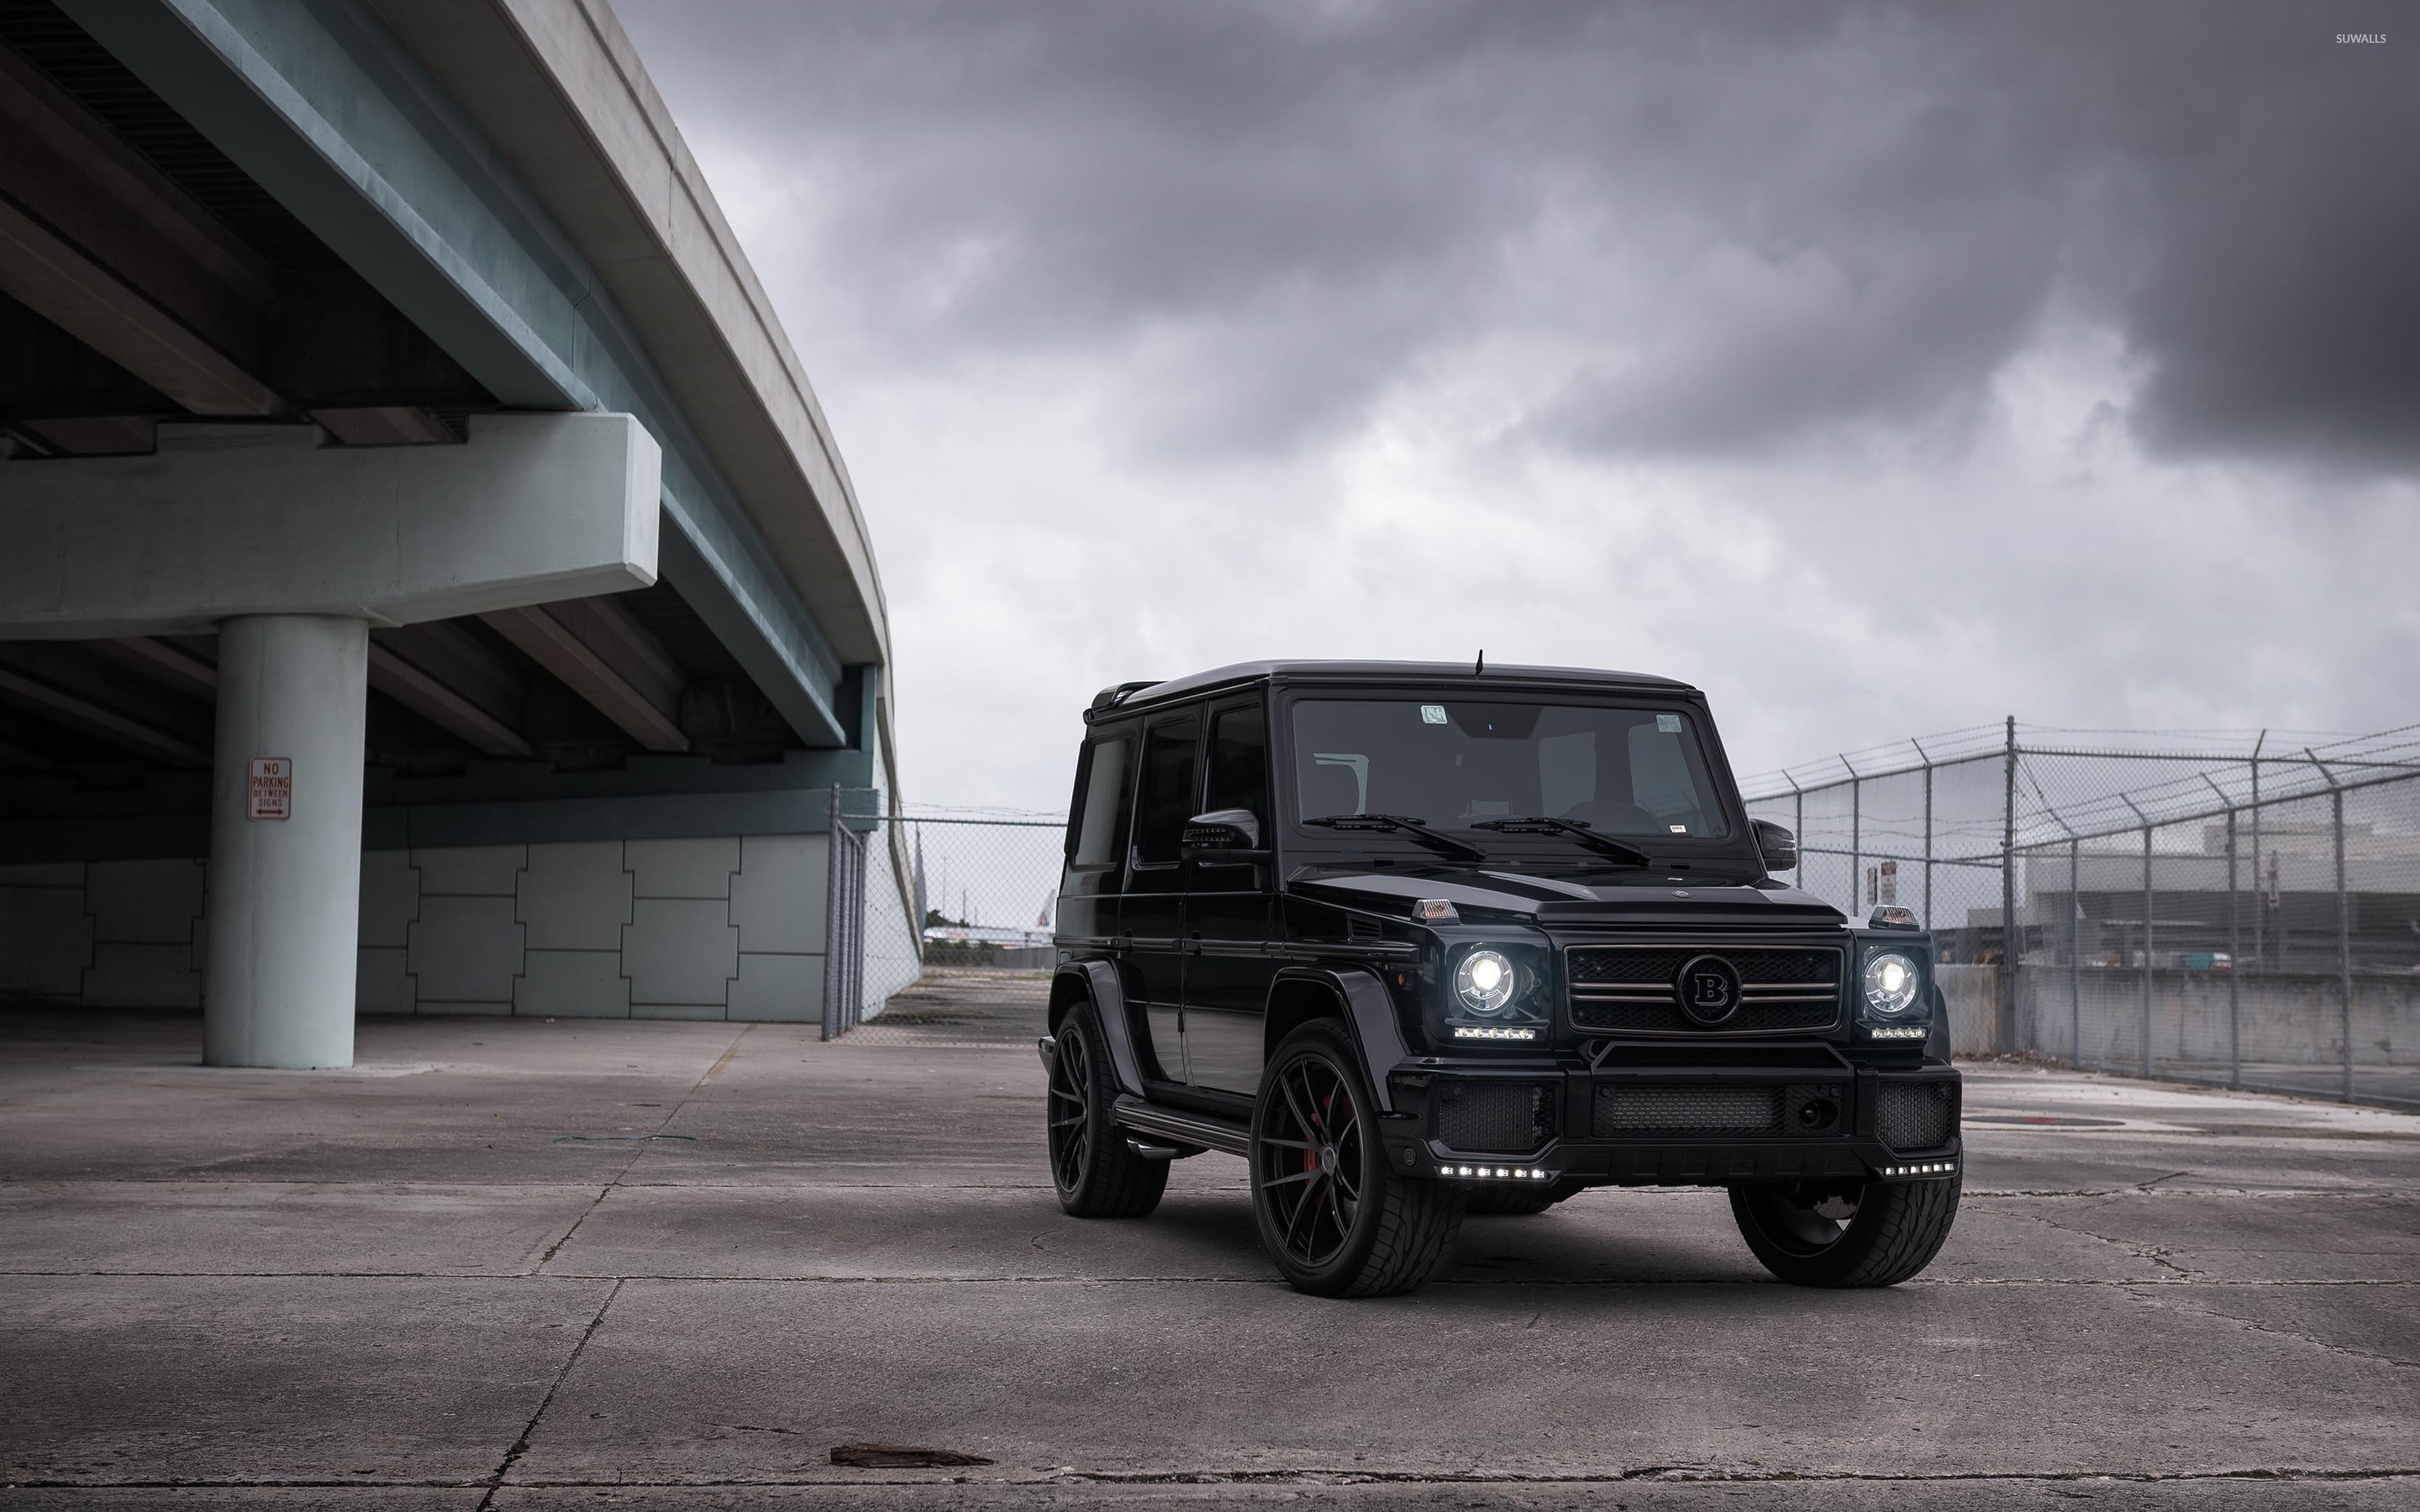 Brabus mercedes benz g class under a bridge wallpaper for Mercedes benz g class brabus